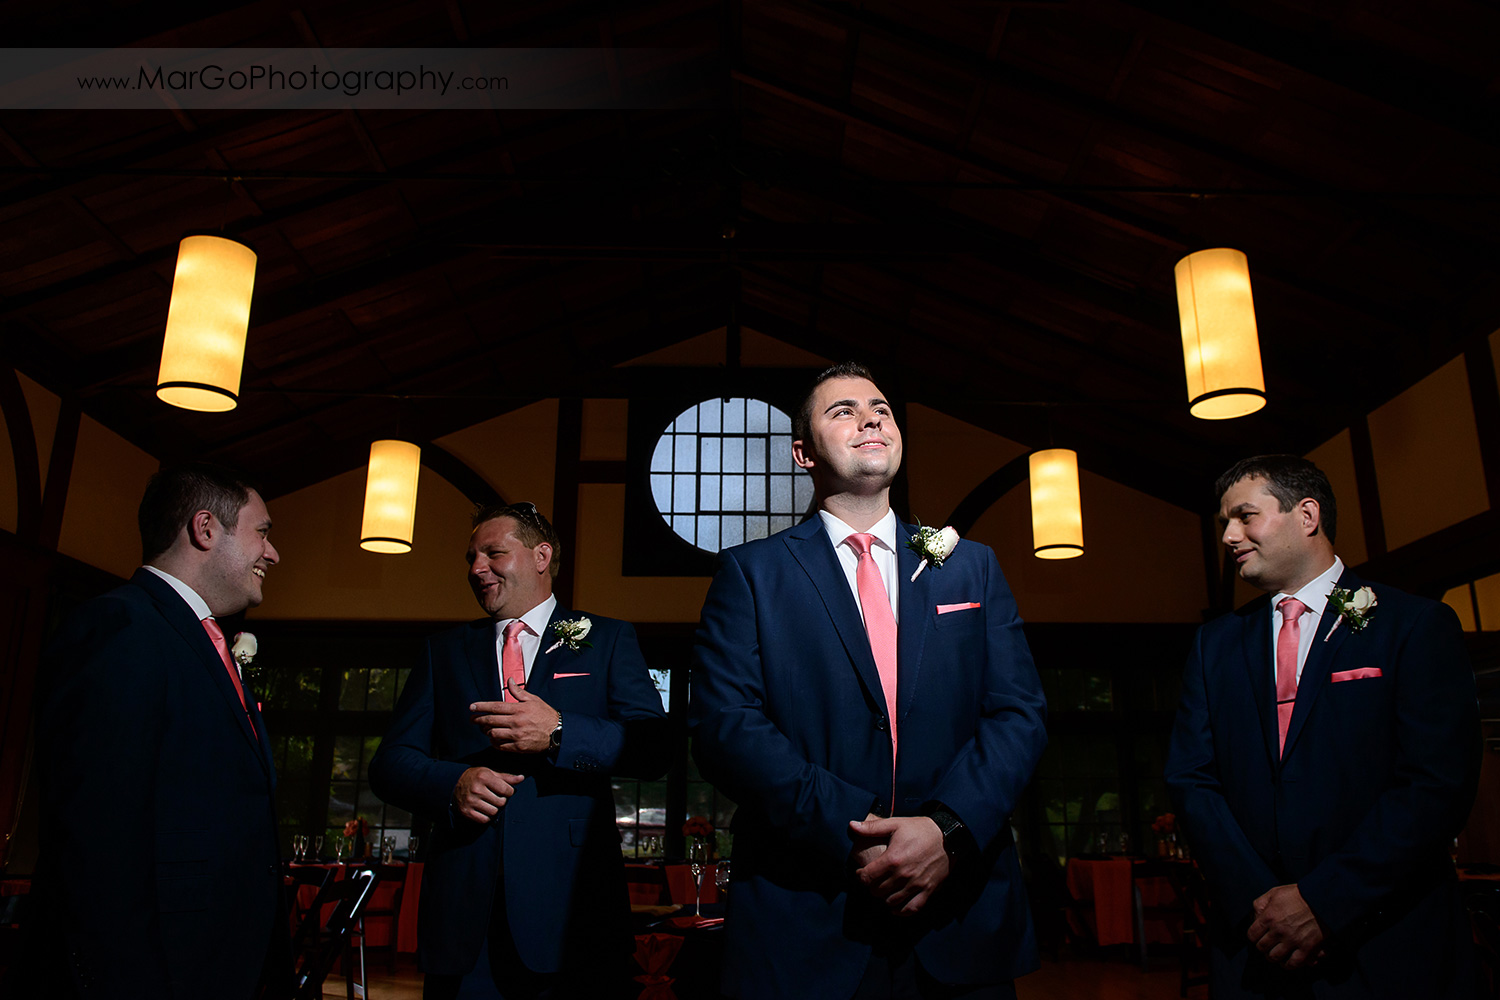 portrait of groom in blue suit and pink tie with groomsmen in background at Saratoga Foothill Club